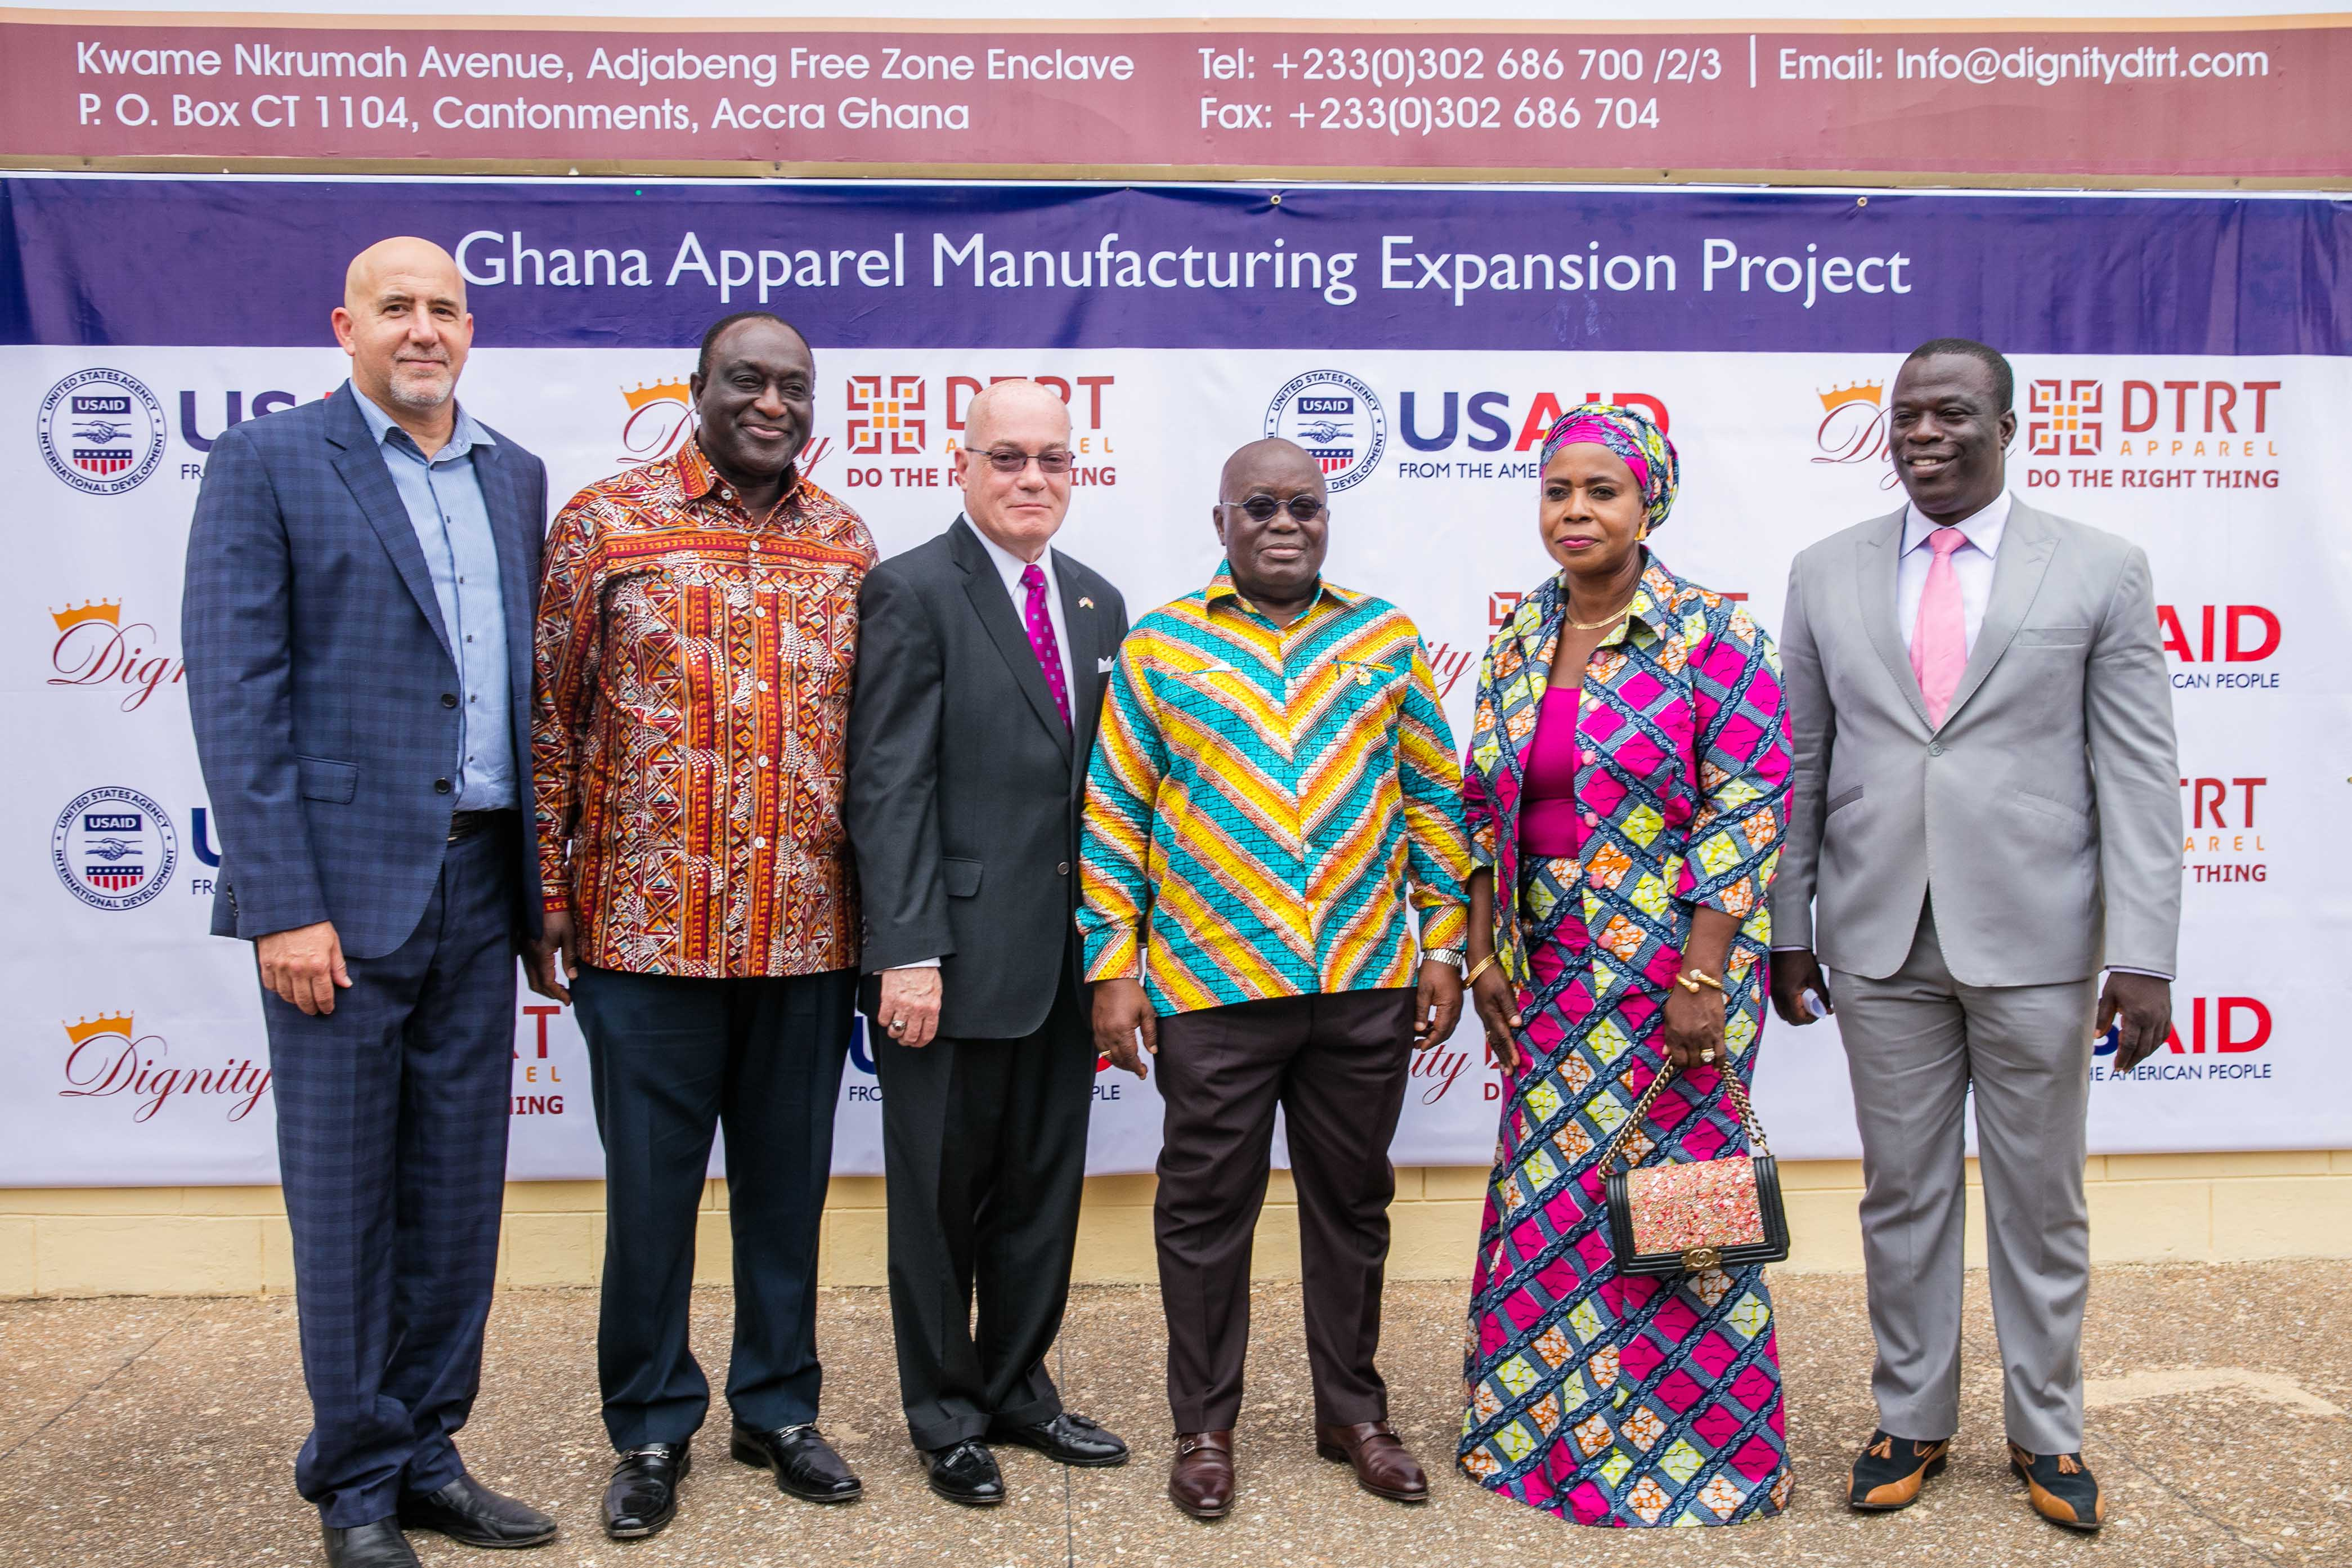 More than 1,100 new jobs, USAID supports Dignity DTRT Limited Ghana